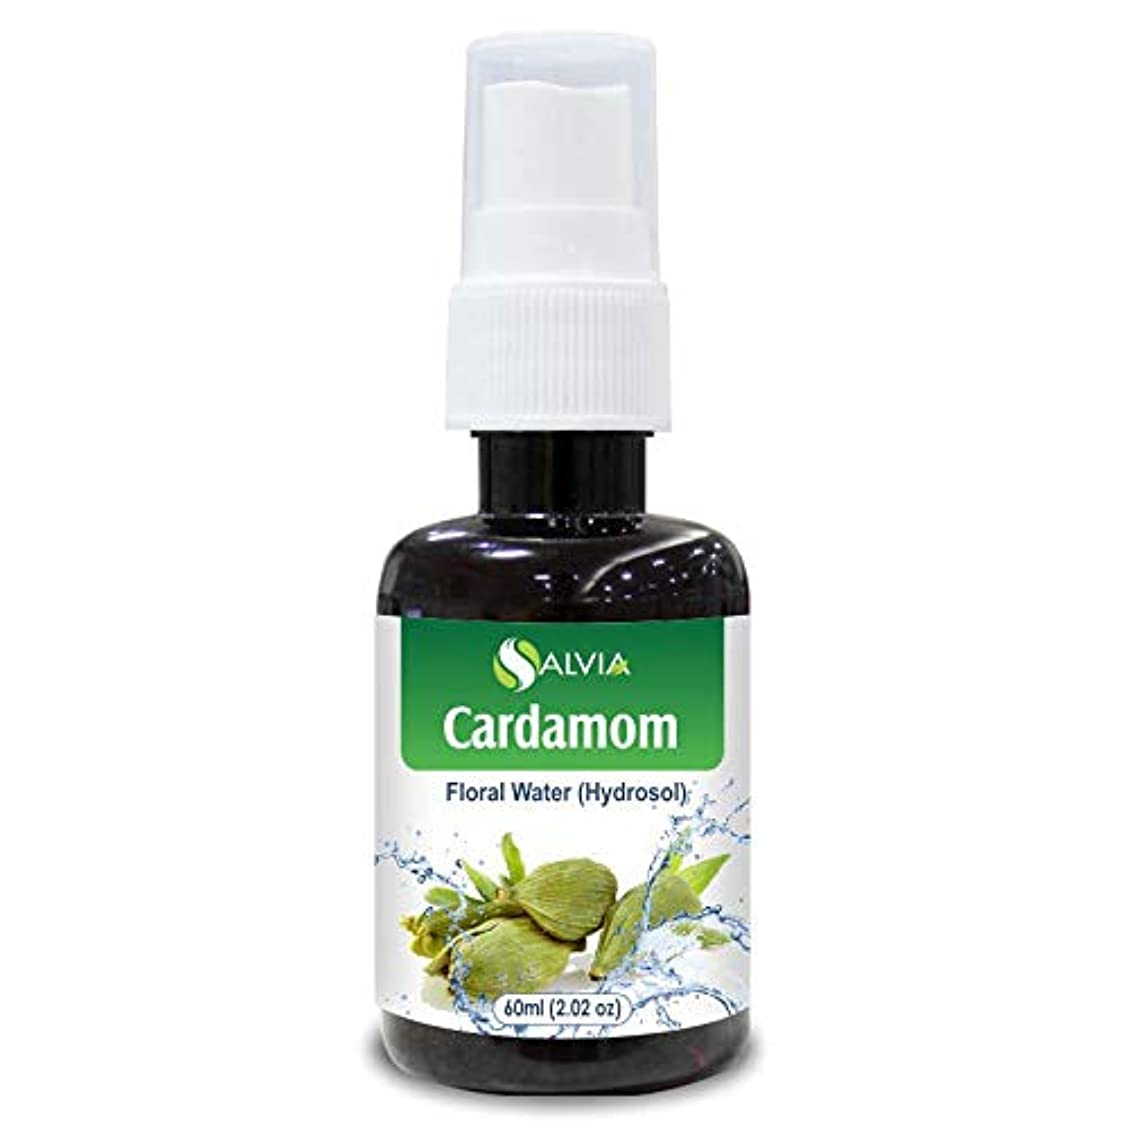 ミュート司法グリーンバックCardamom Floral Water Floral Water 60ml (Hydrosol) 100% Pure And Natural